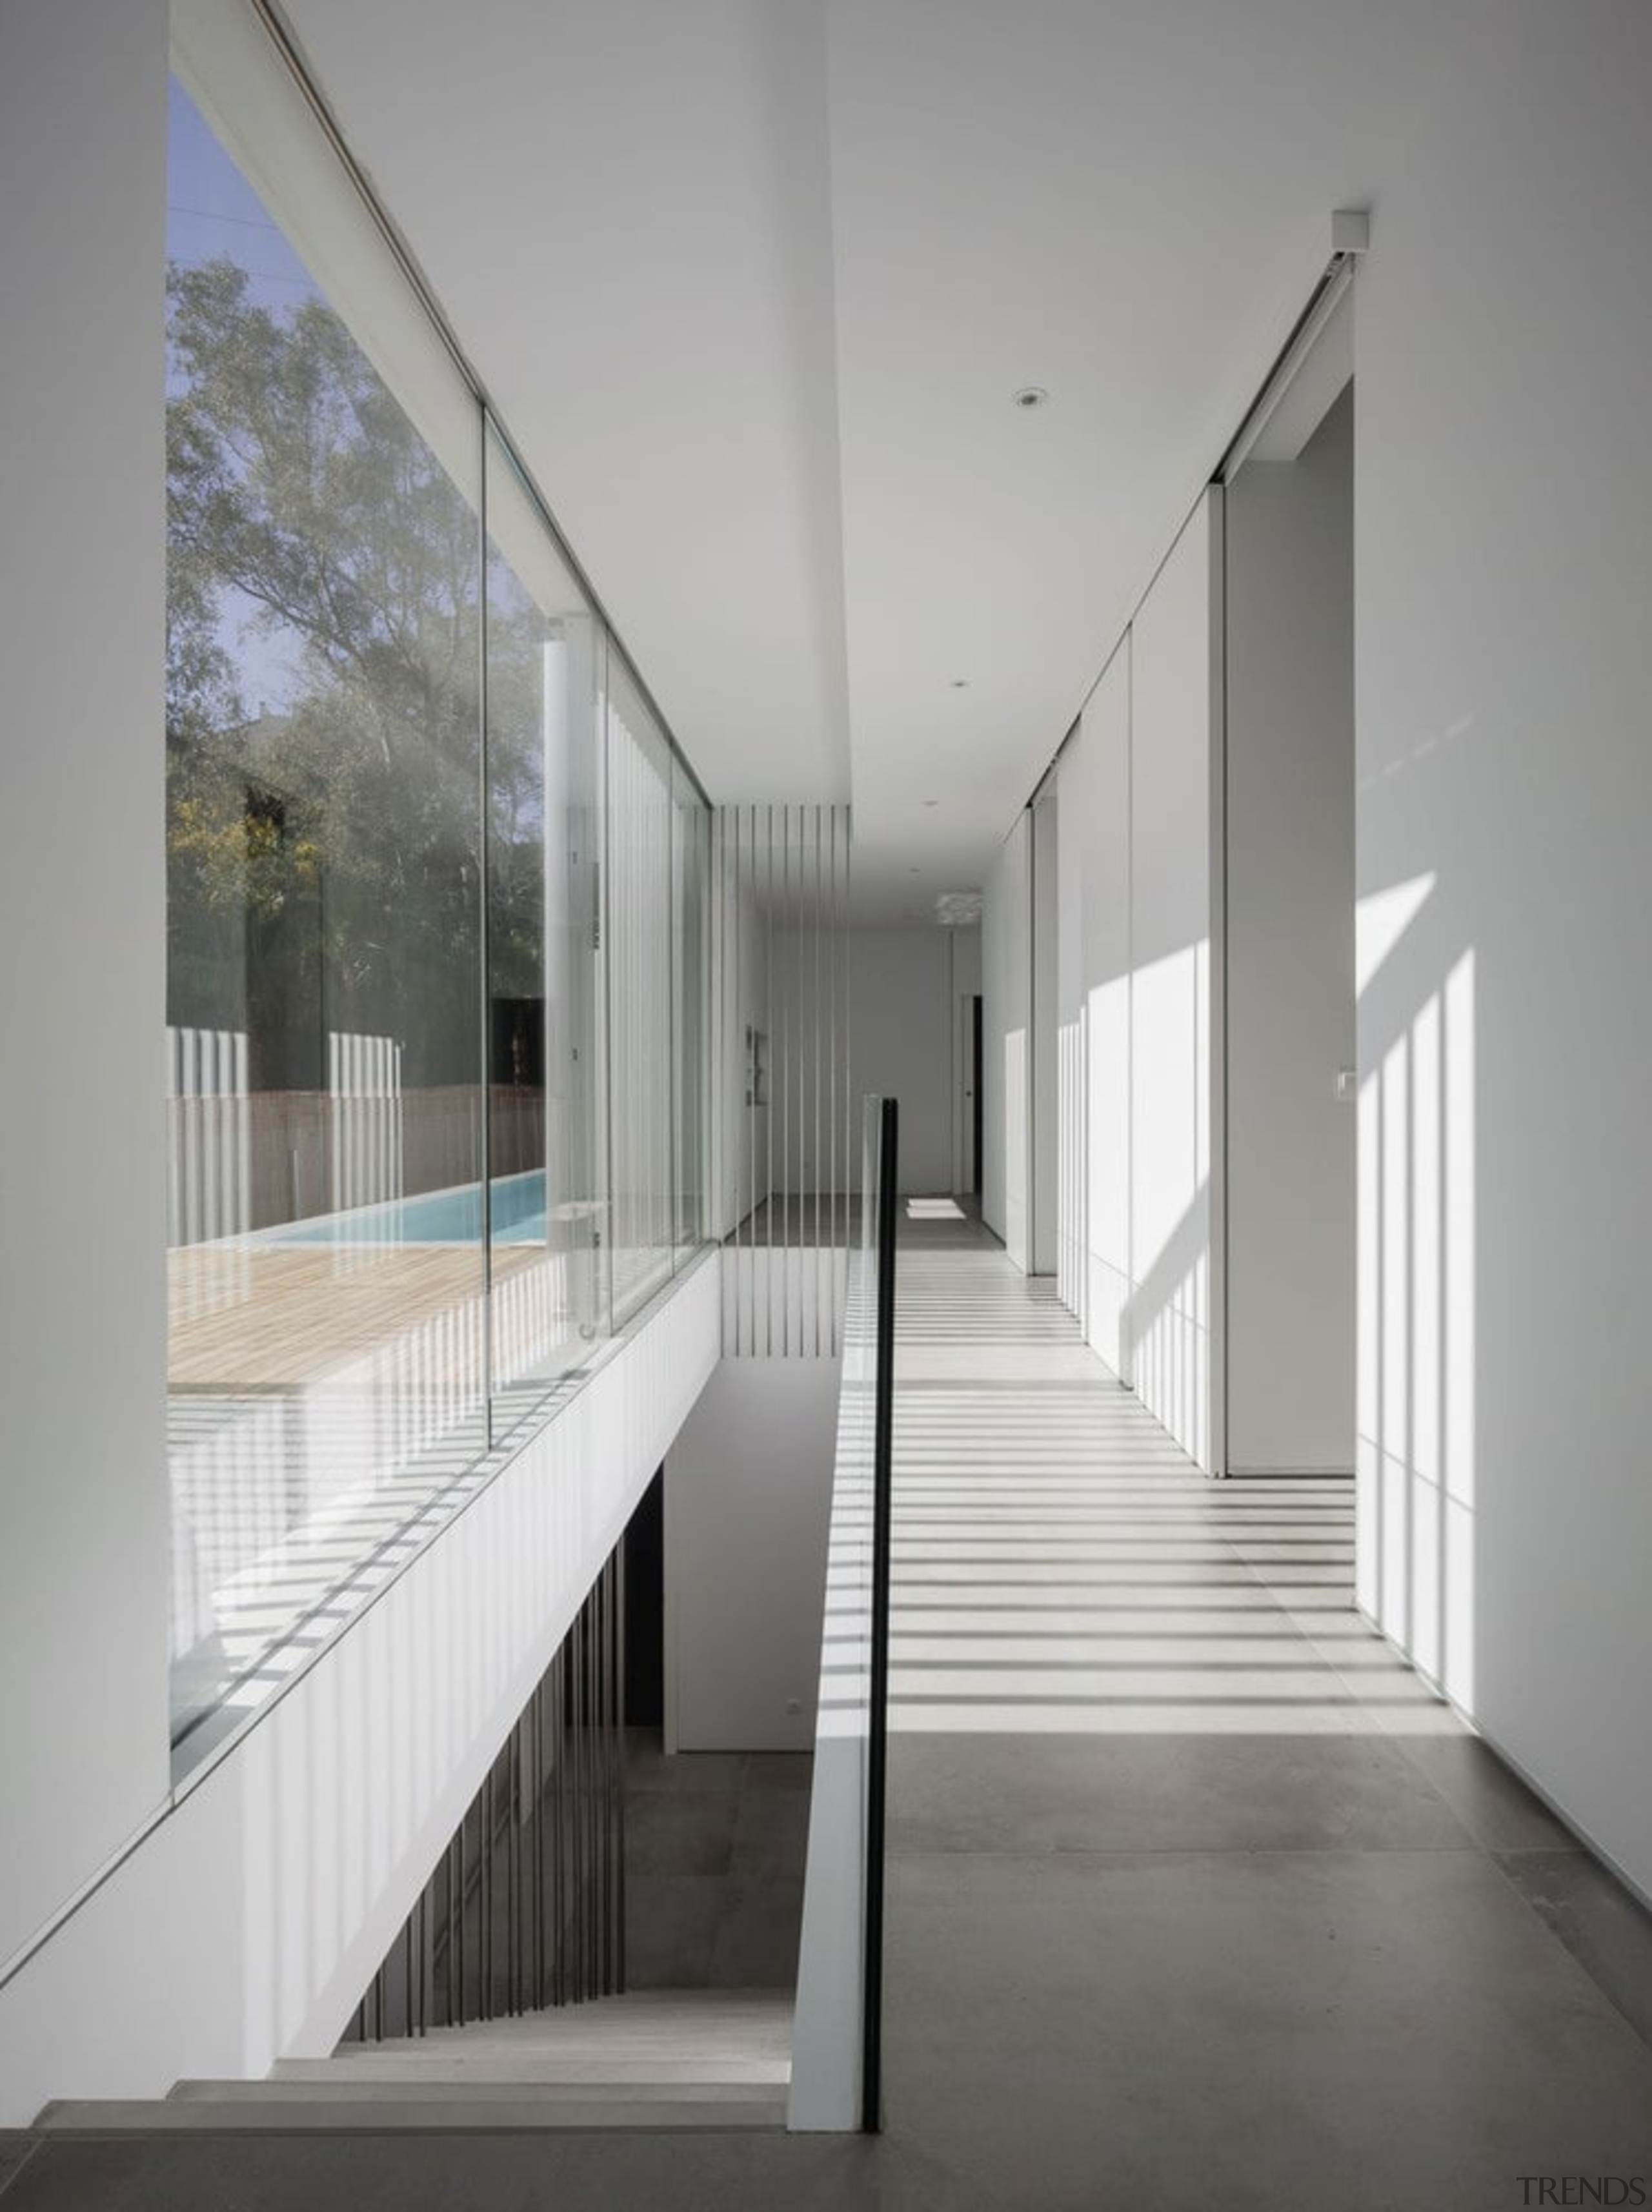 Floor to ceiling windows run the length of architecture, ceiling, daylighting, glass, handrail, house, interior design, gray